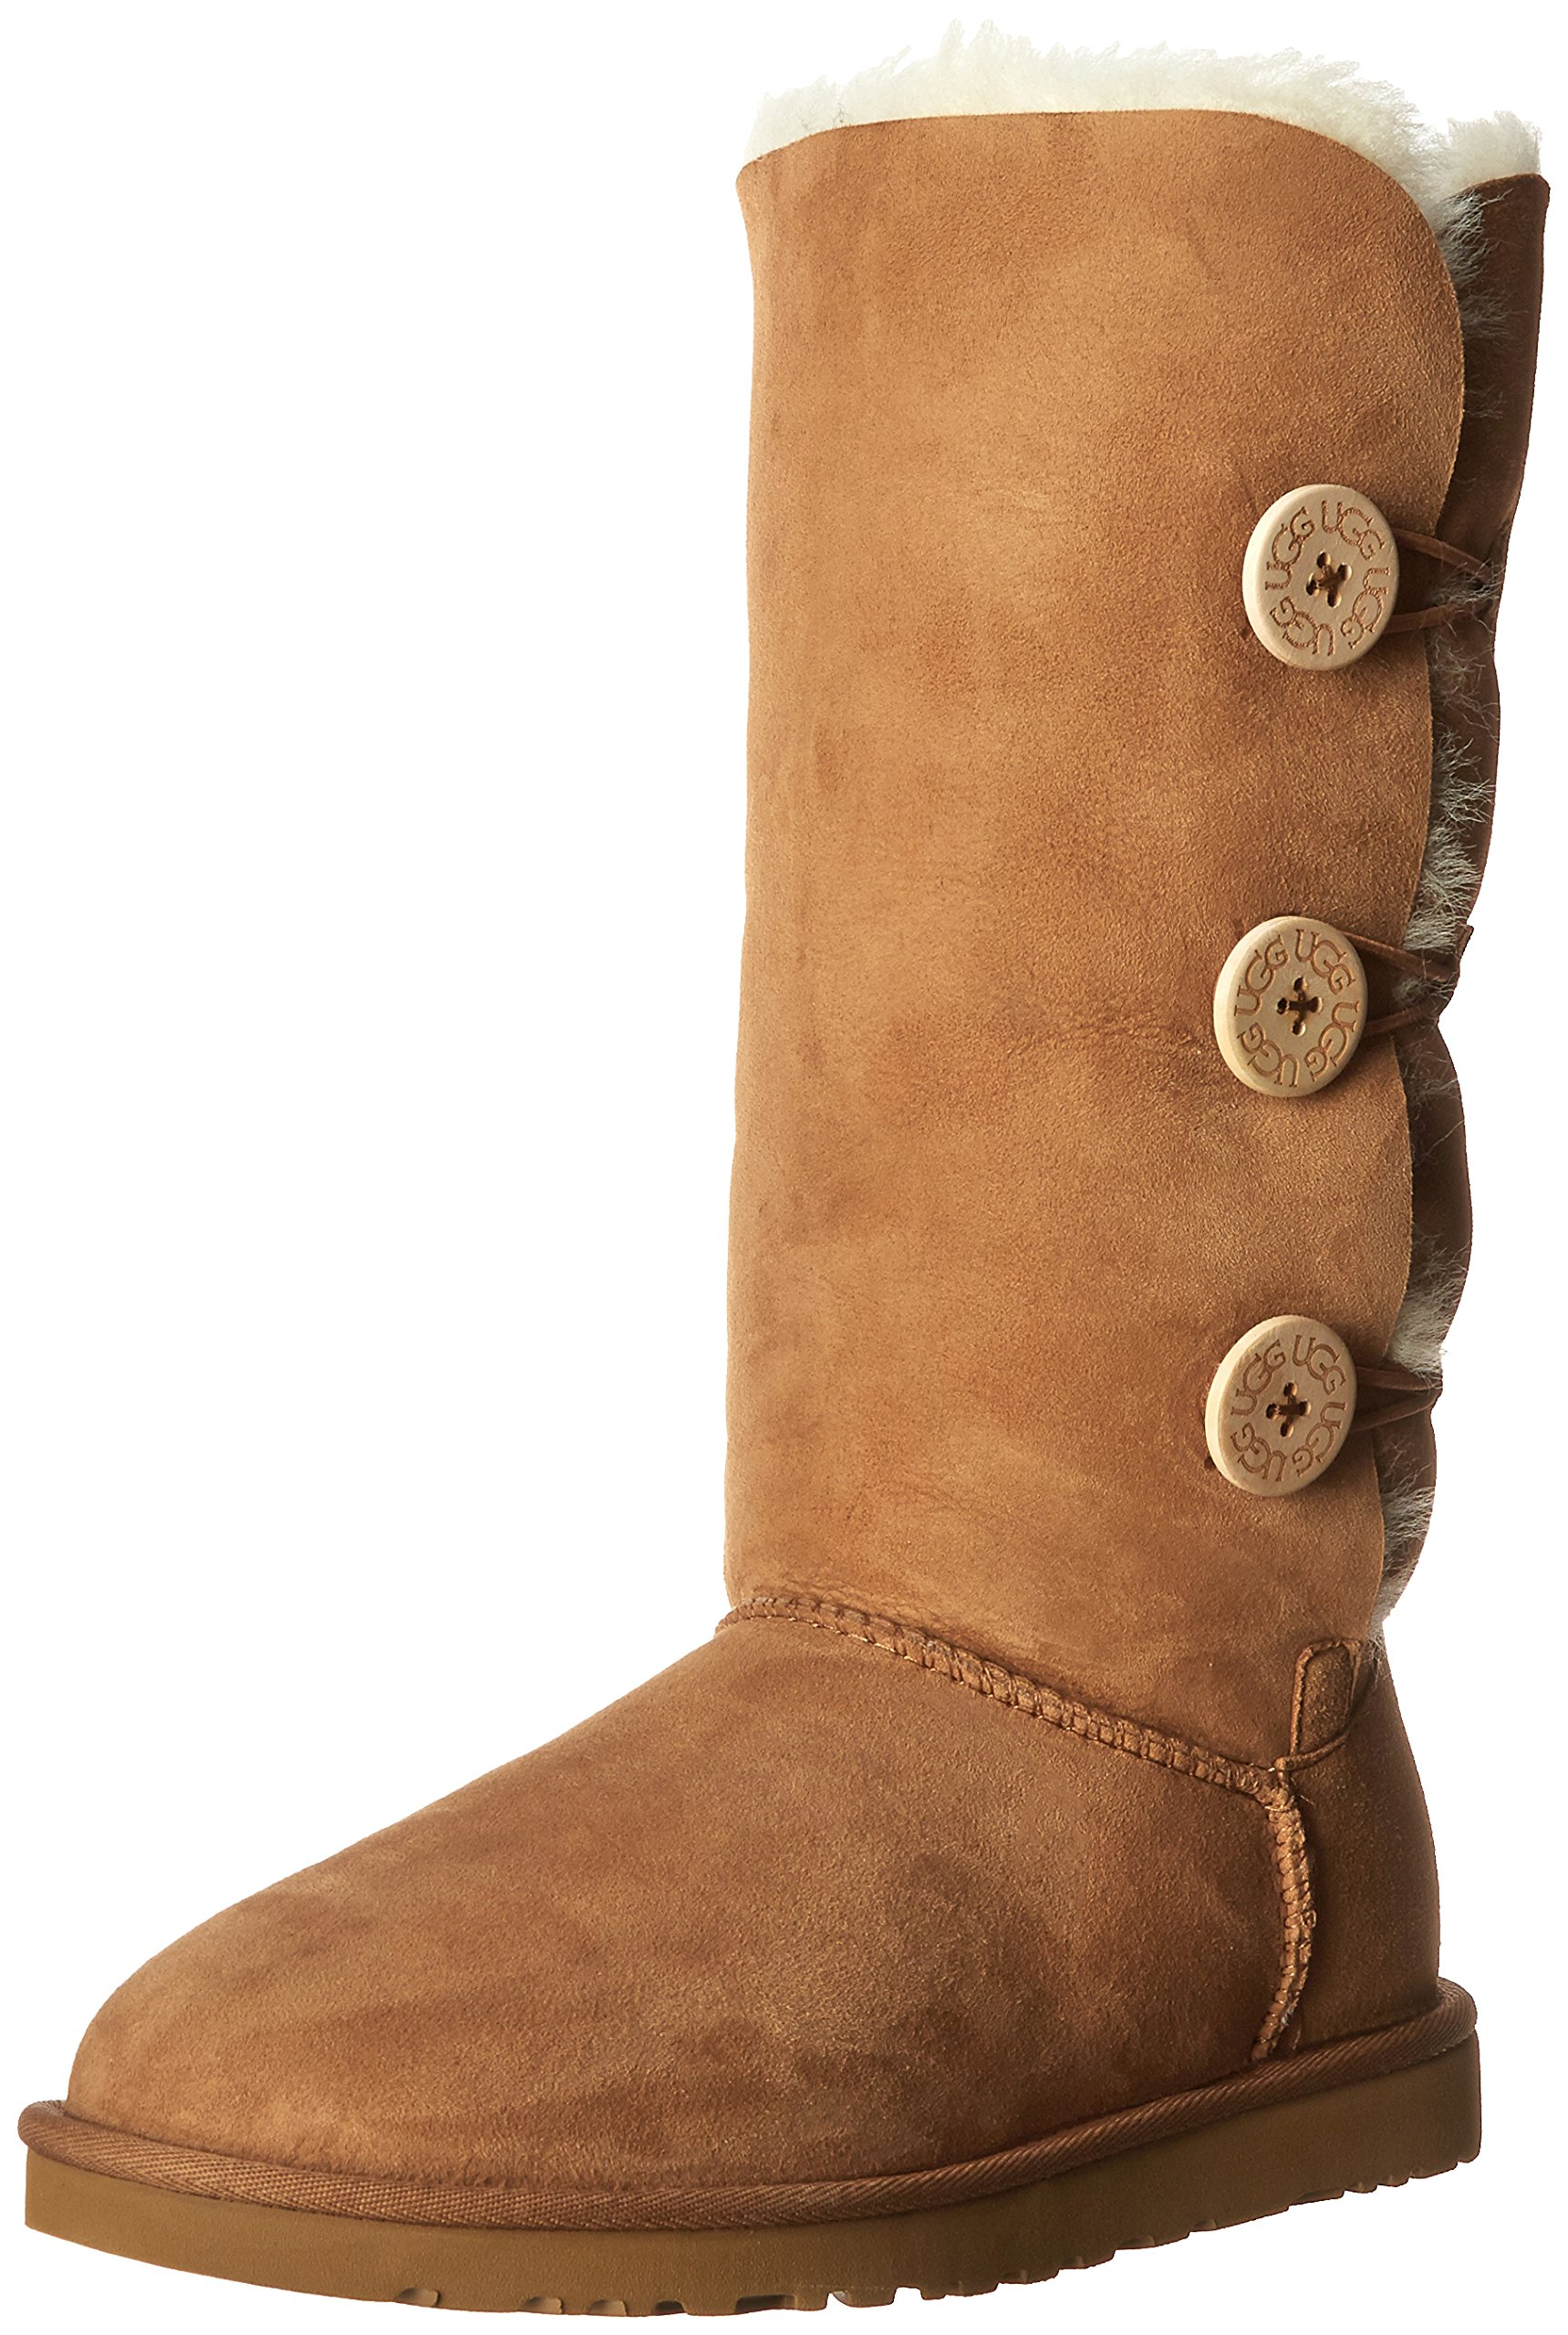 UGG Women's Bailey Button Triplet Chestnut Sheepskin 9 B - Medium